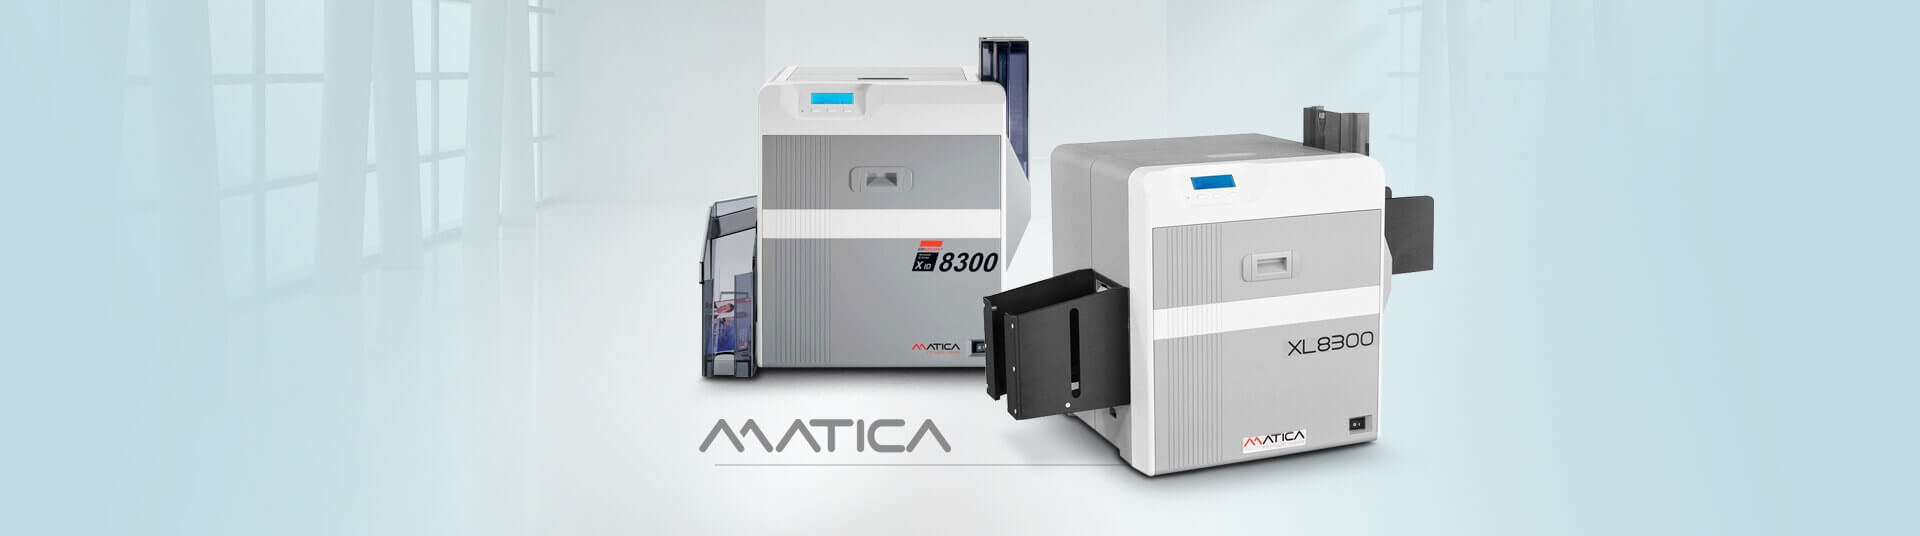 Matica Photo ID Printers